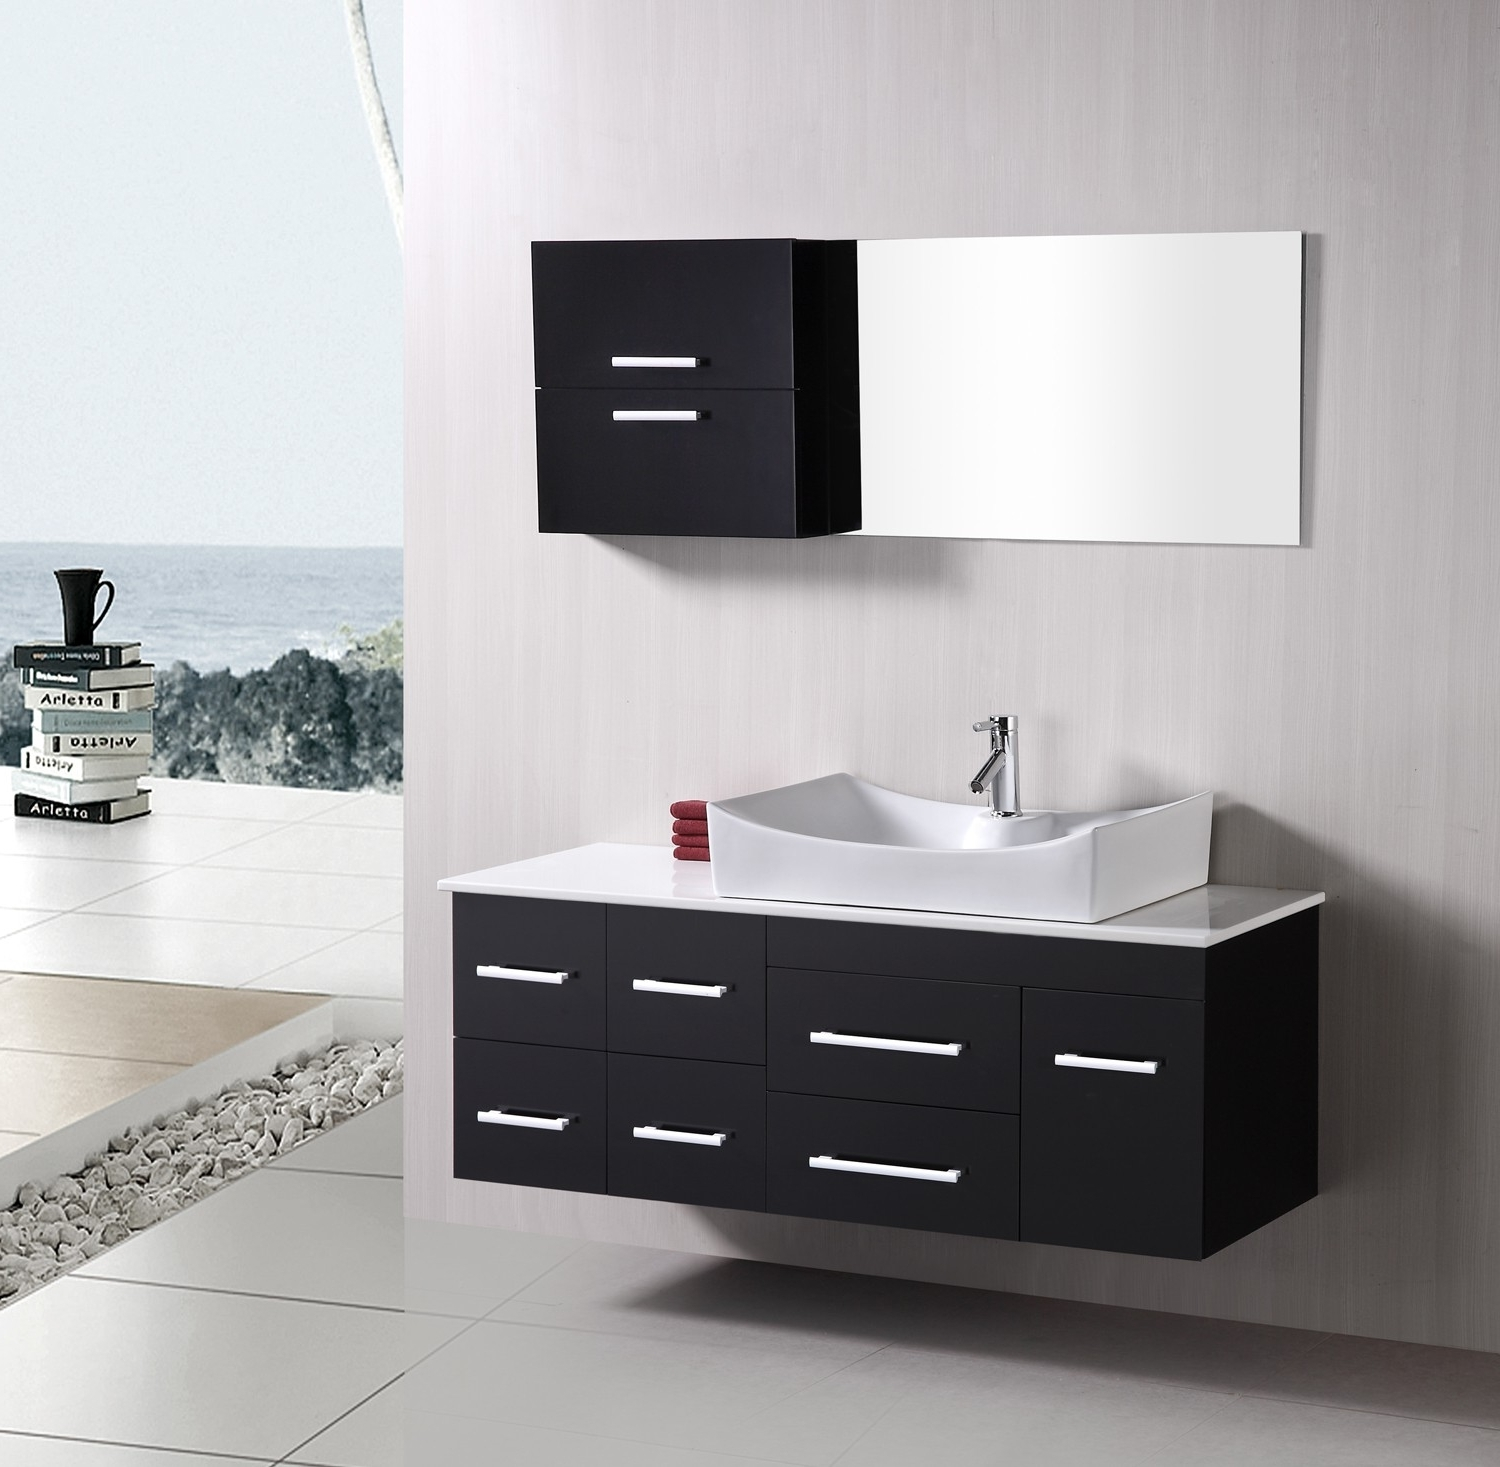 Home Architec Ideas: Bathroom Cabinet Designs Images 40+ Vanity Designs For Bathrooms Pakistan Inspirations